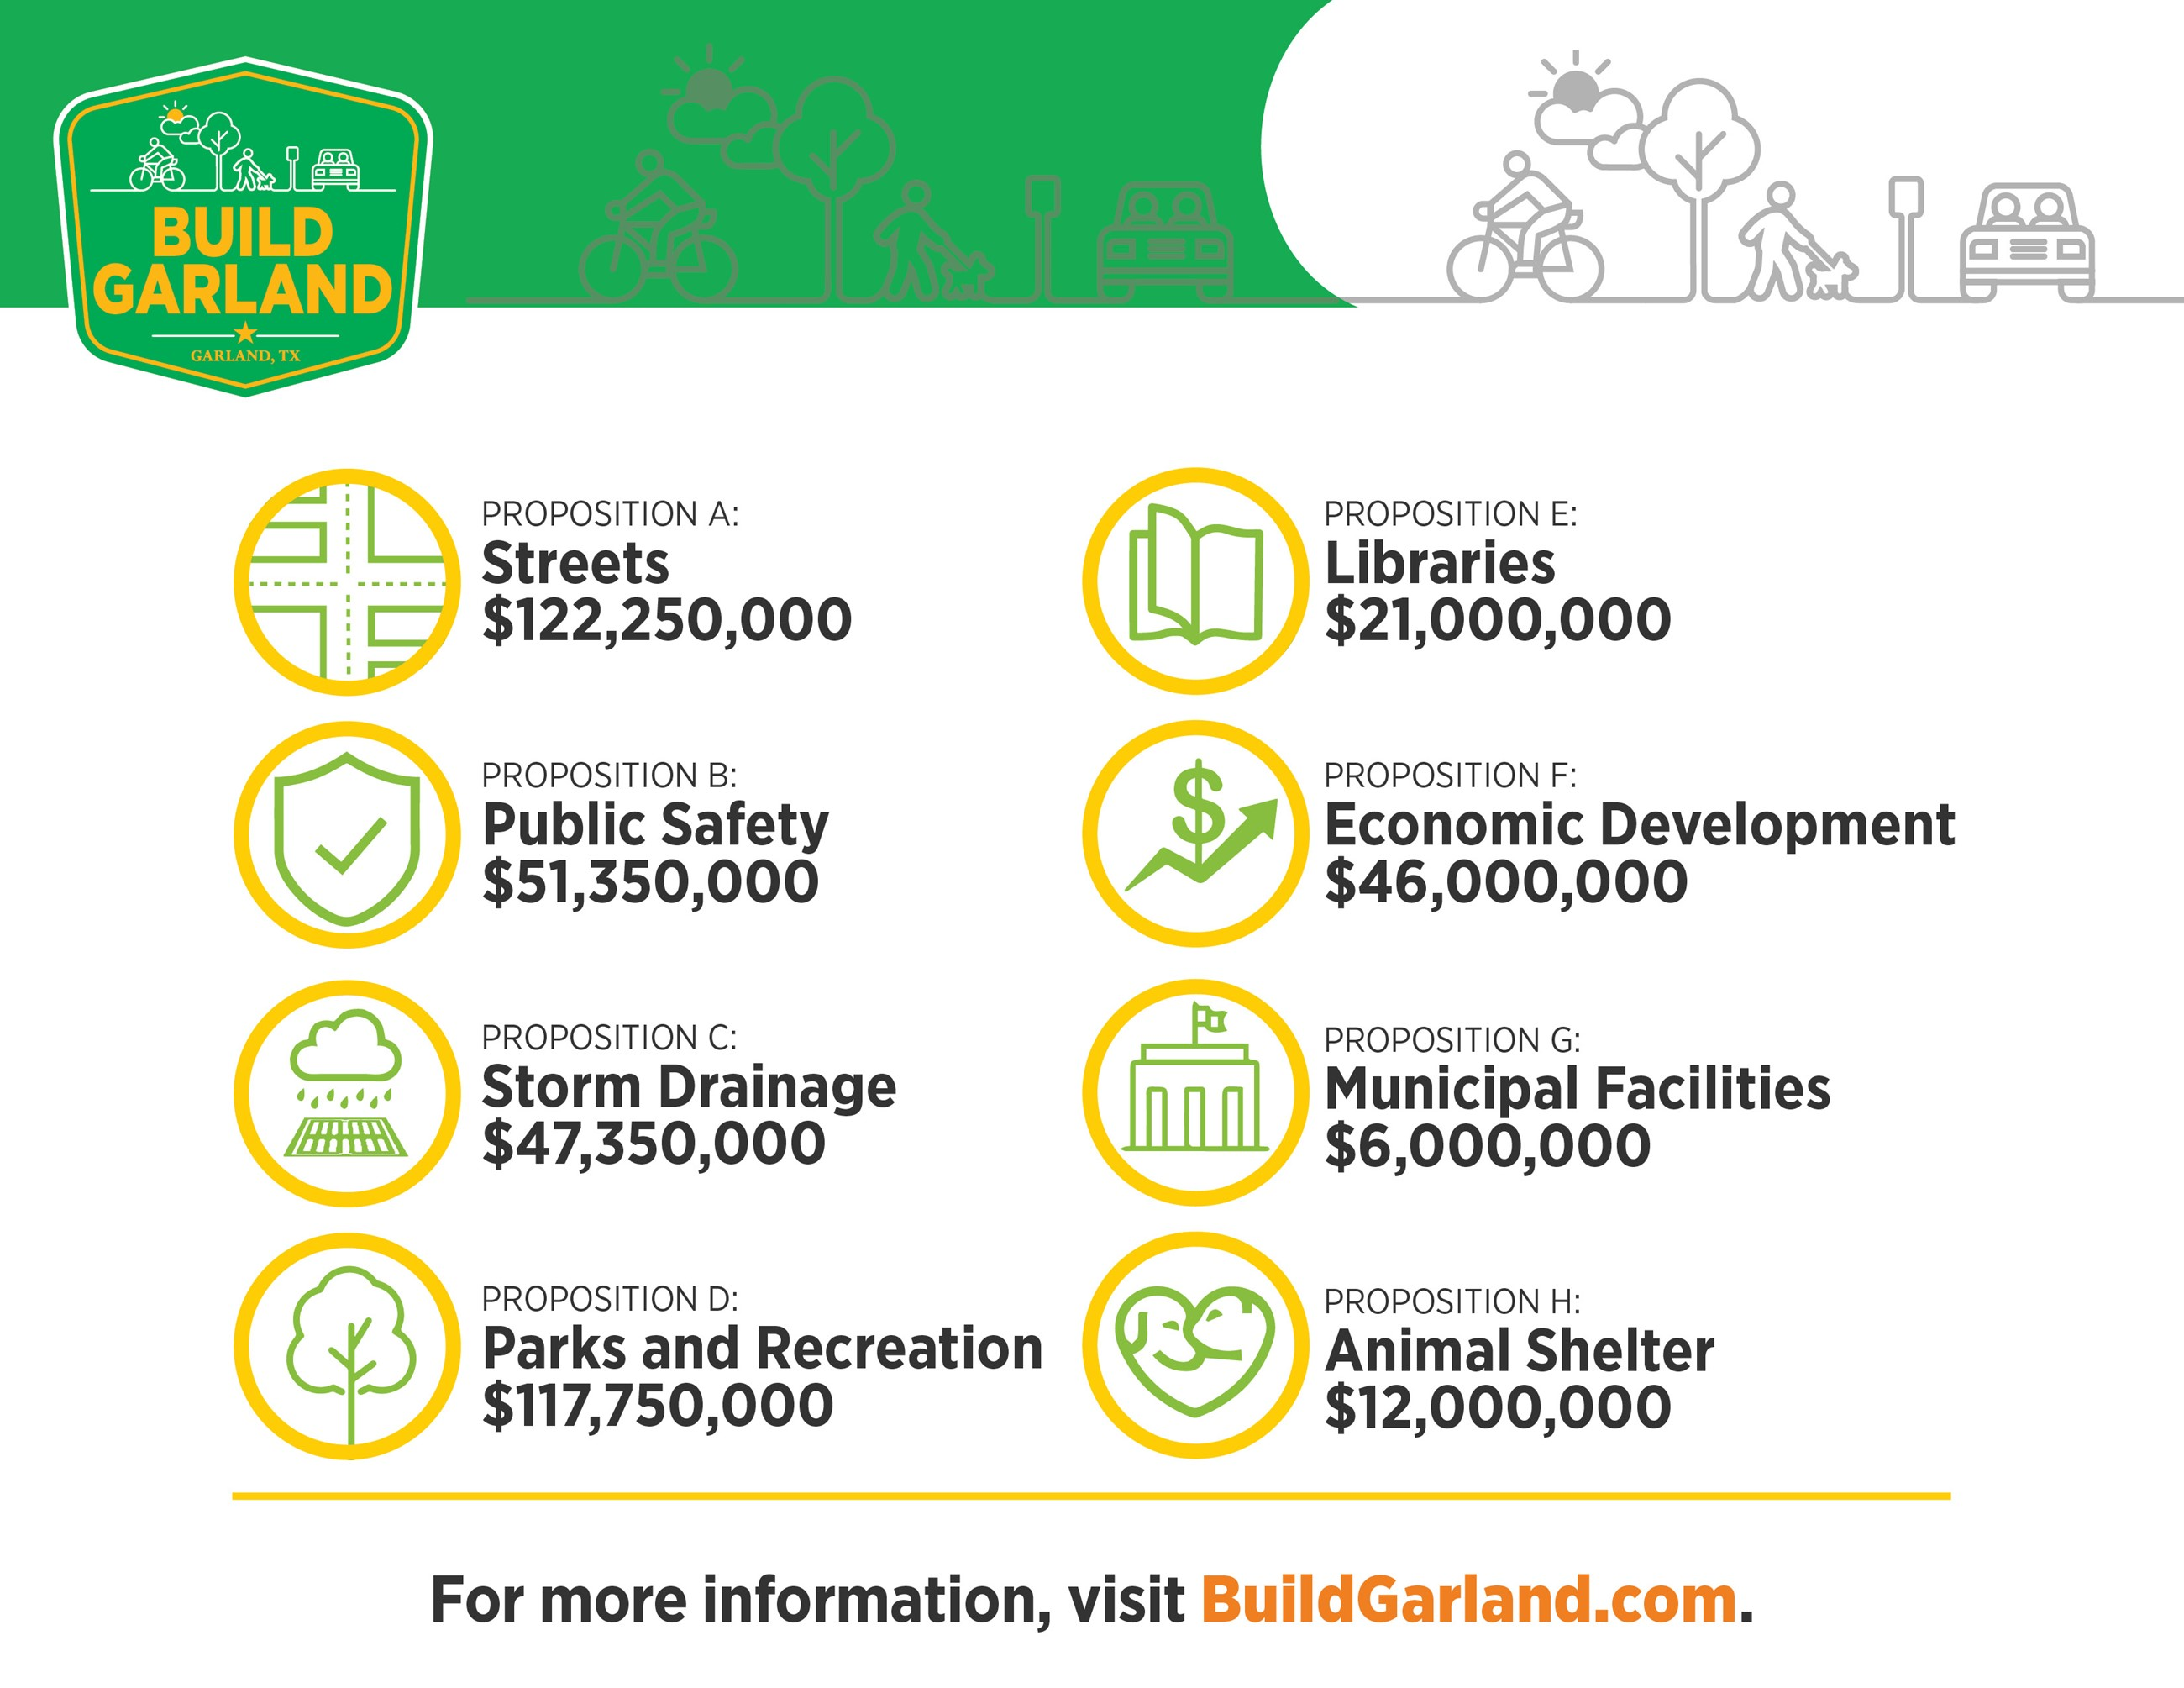 2019 Garland Bond Program overview with list of project categories